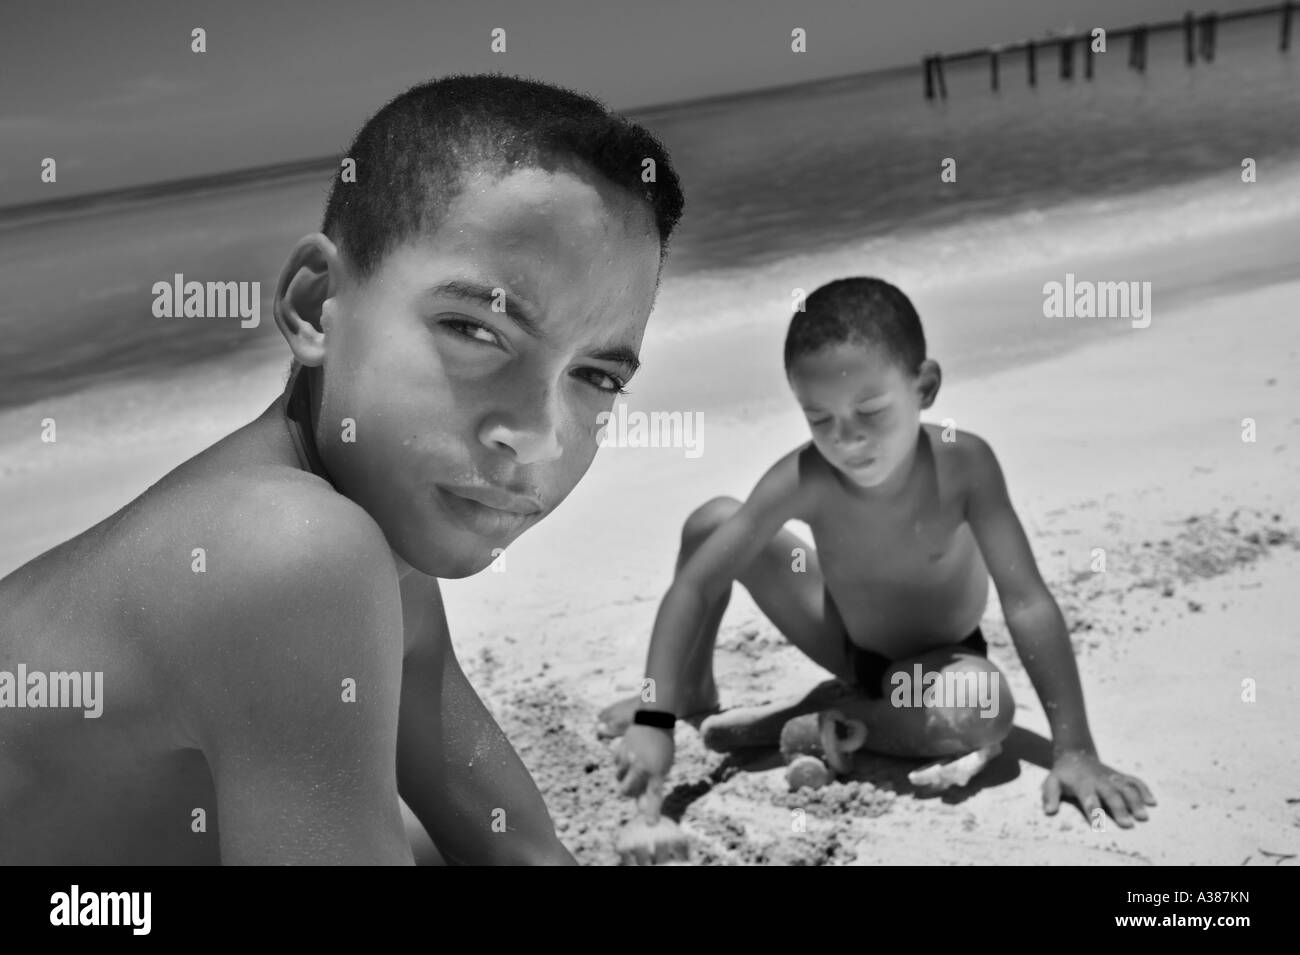 Two Cuban boys play in the sand at Playa Ancon a popular vacation beach town near Trinidad - Stock Image